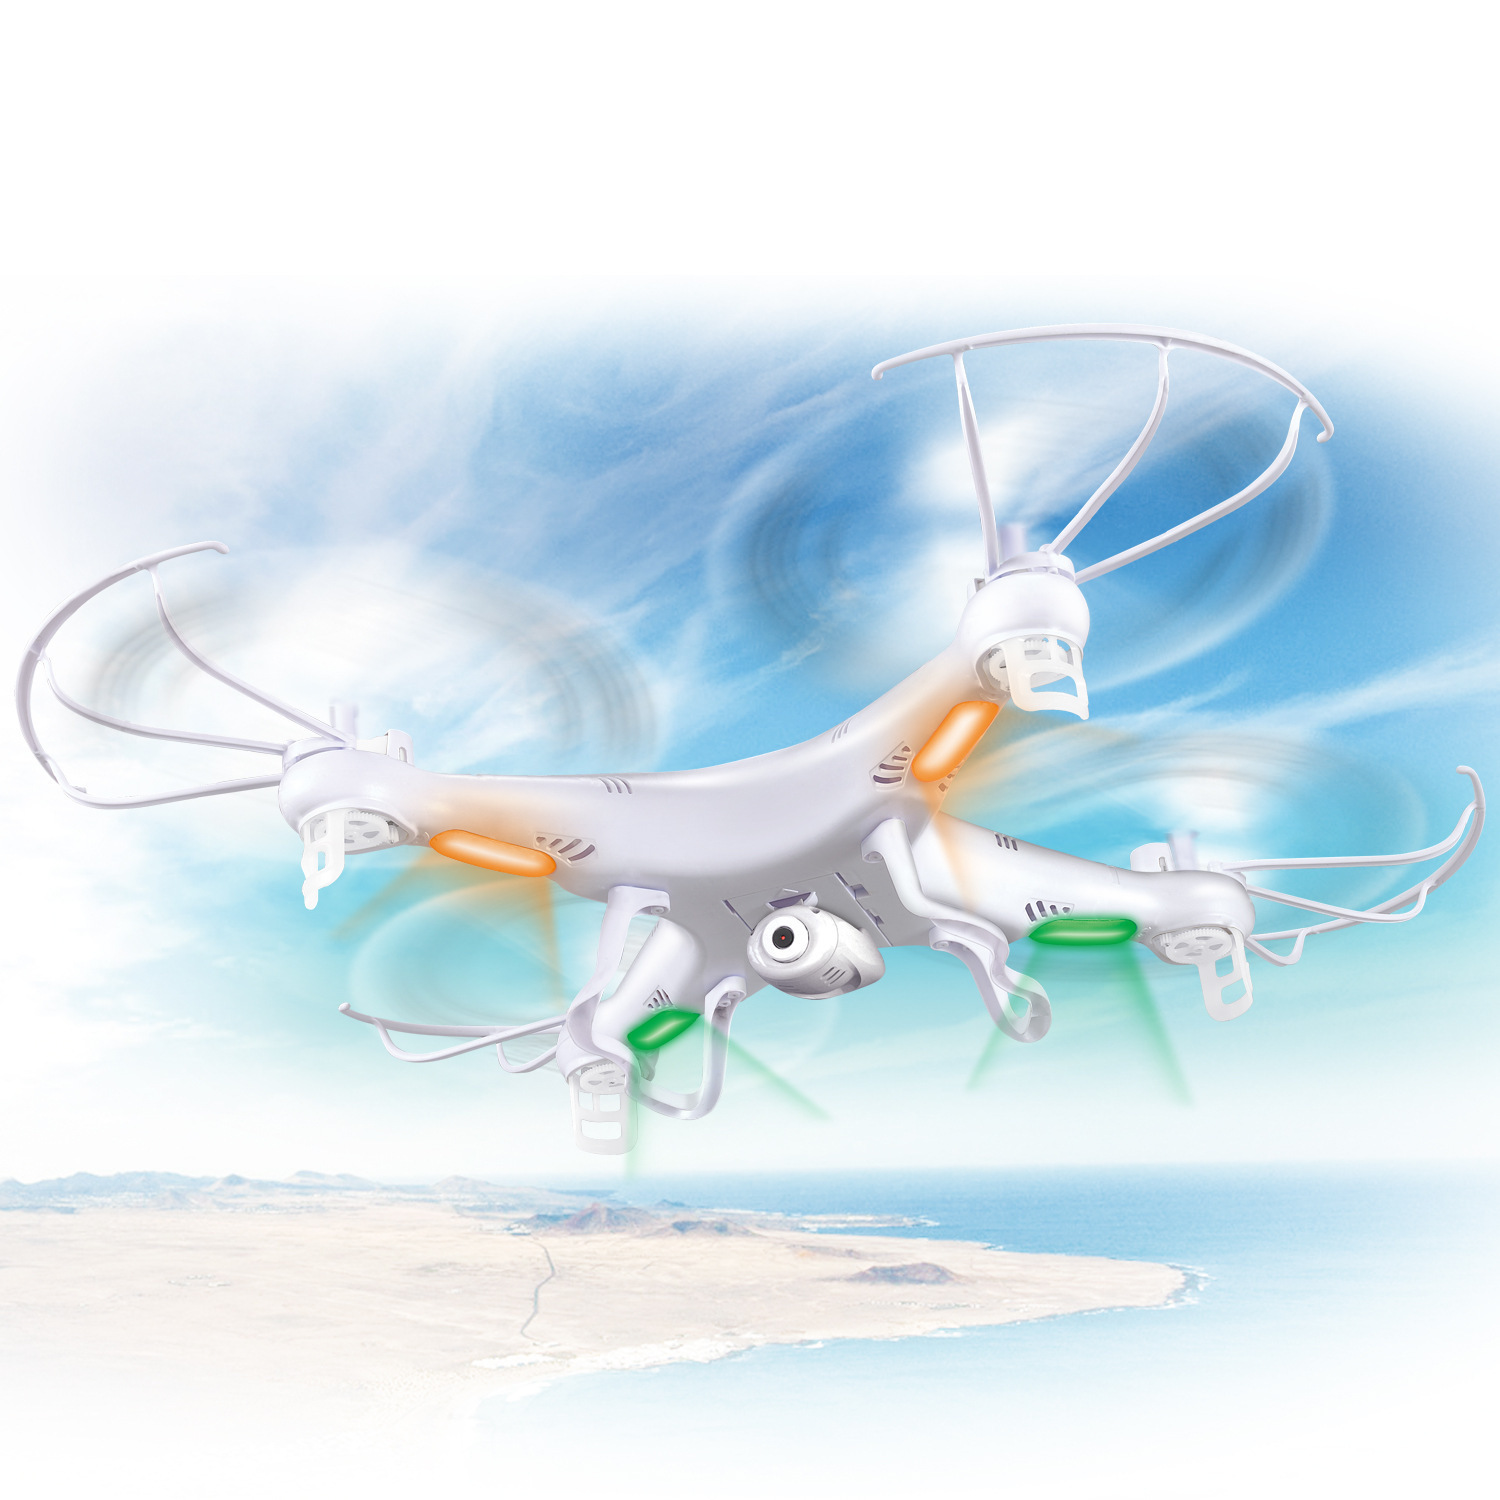 SYMA Sima Model Airplane X5/X5A Six Axis Gyroscope Unmanned Aerial Vehicle Remote Control Helicopter Quadcopter|  - title=